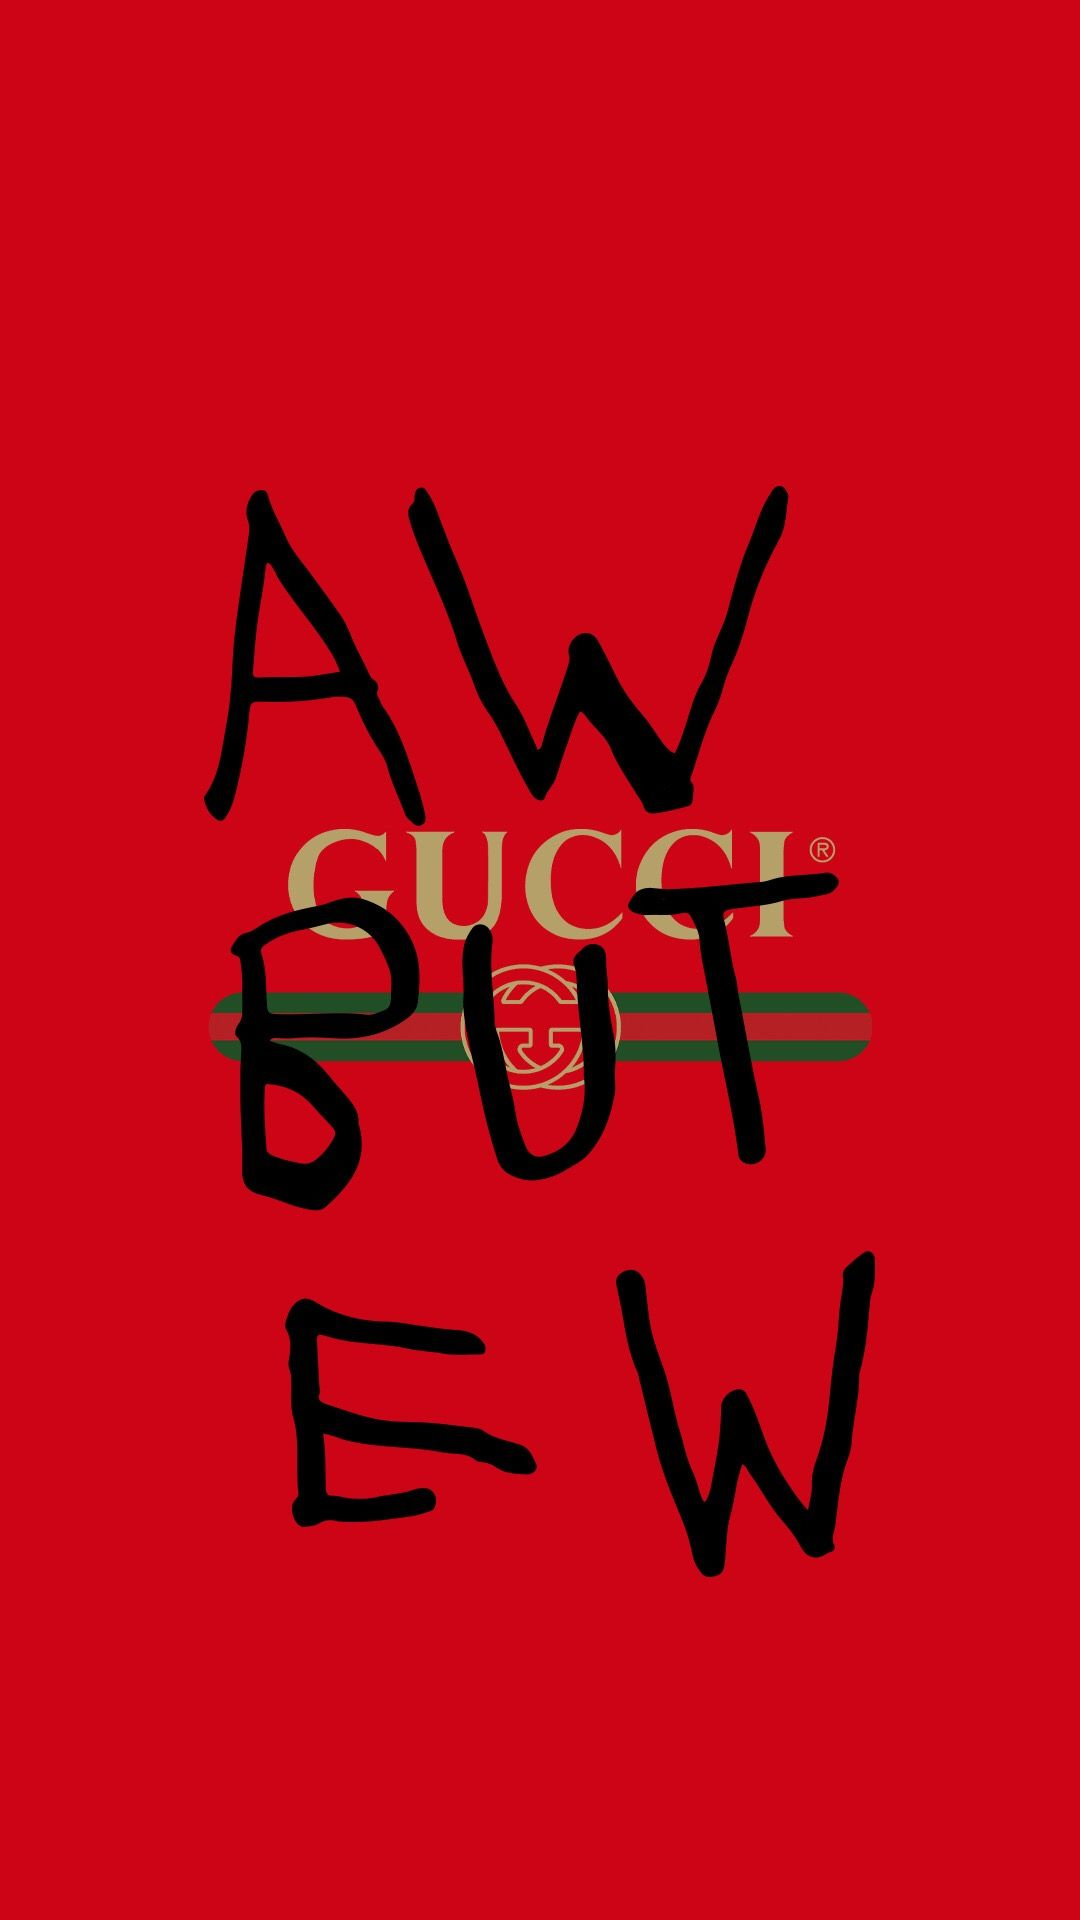 Gucci Iphone Wallpapers Grunge Backgrounds